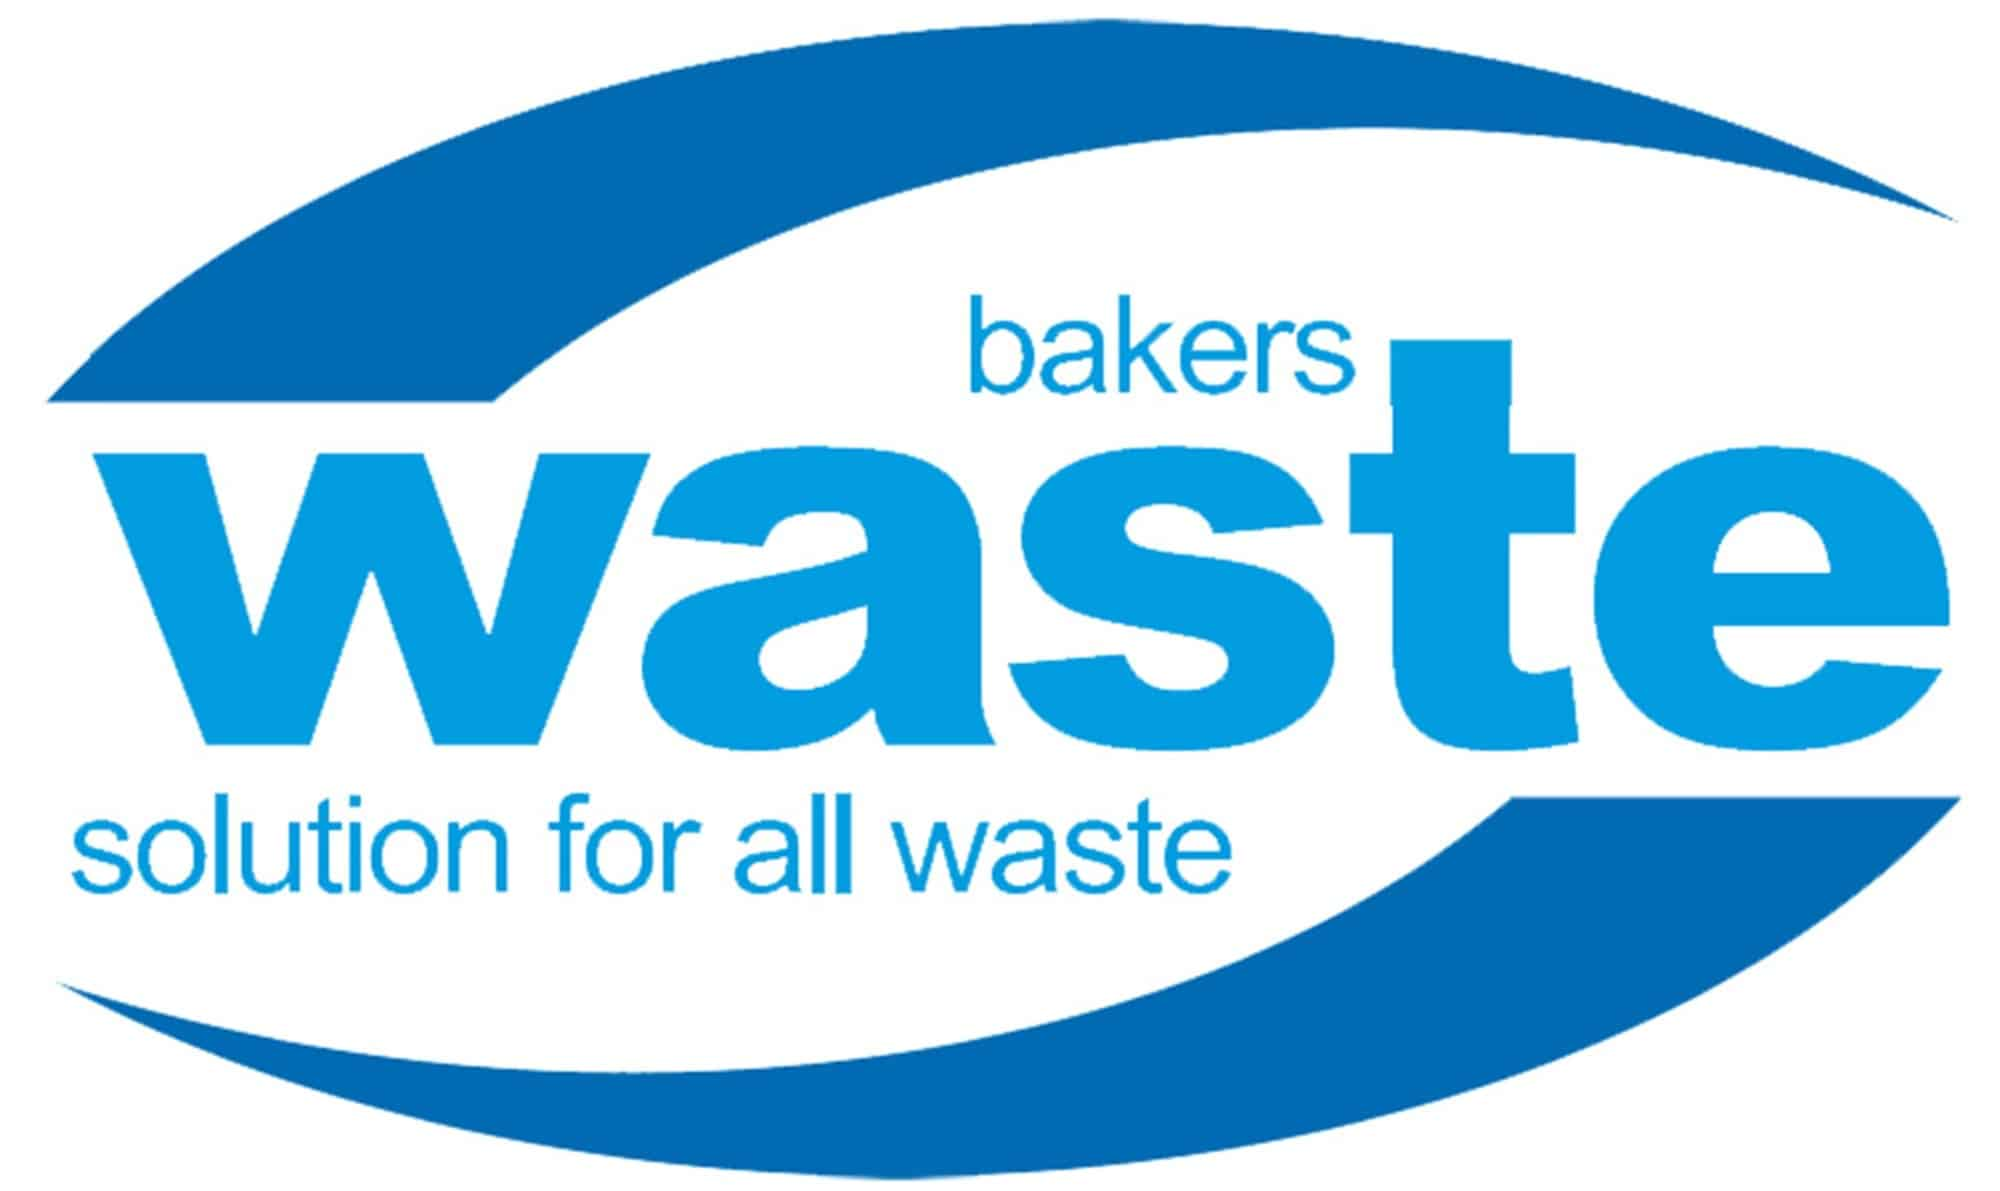 Bakers Waste